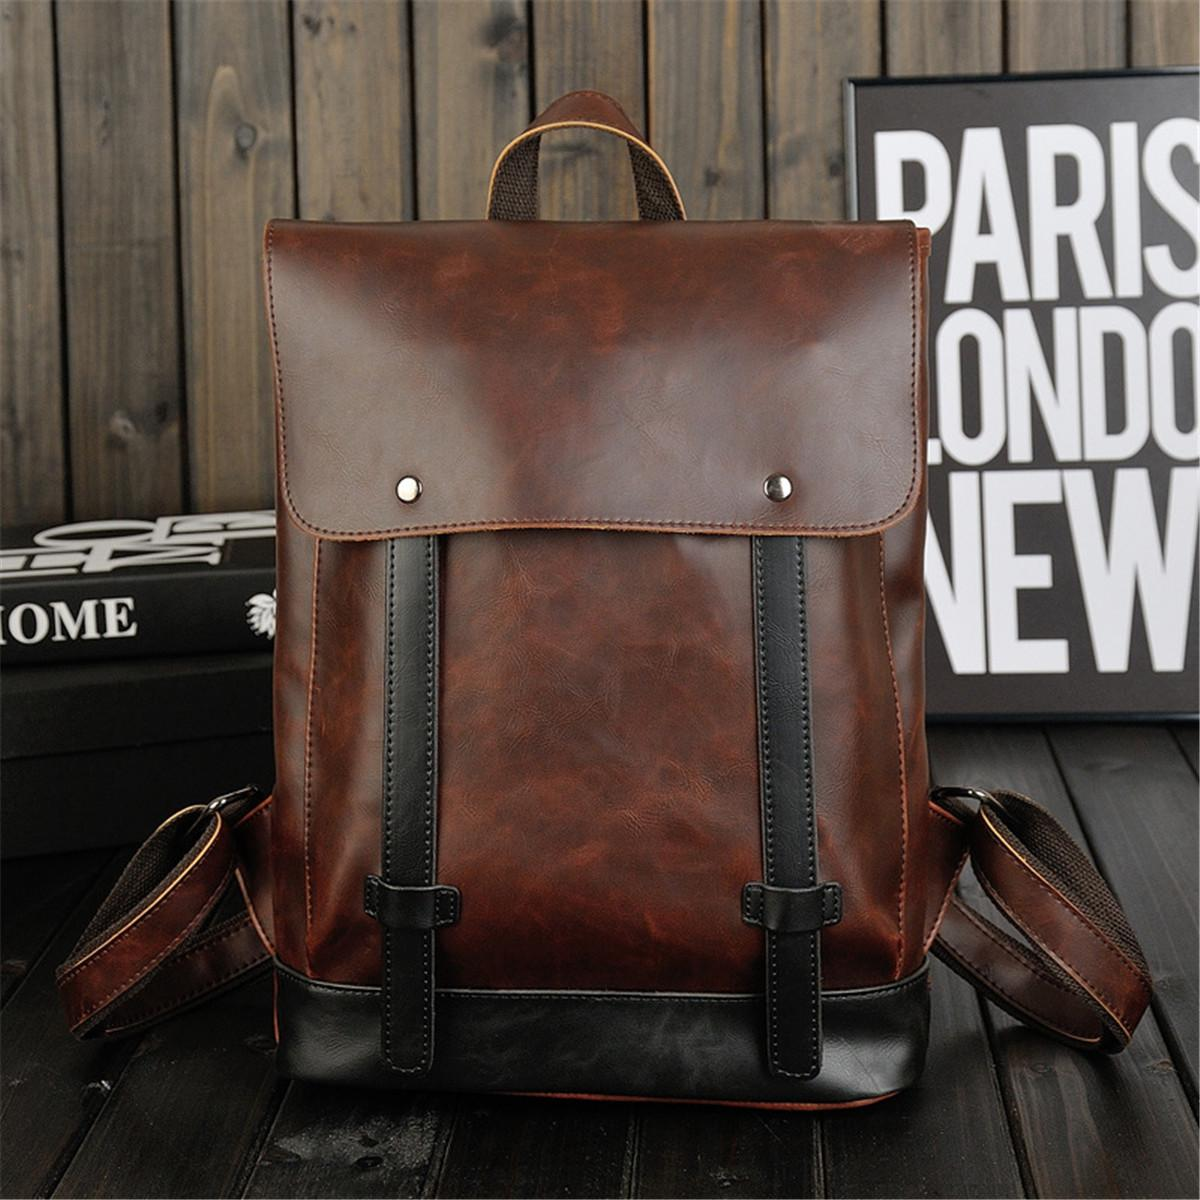 Toko Vintage Men Women Pu Leather Backpack Messenger Bag Satchel Travel Rucksack Bags Termurah